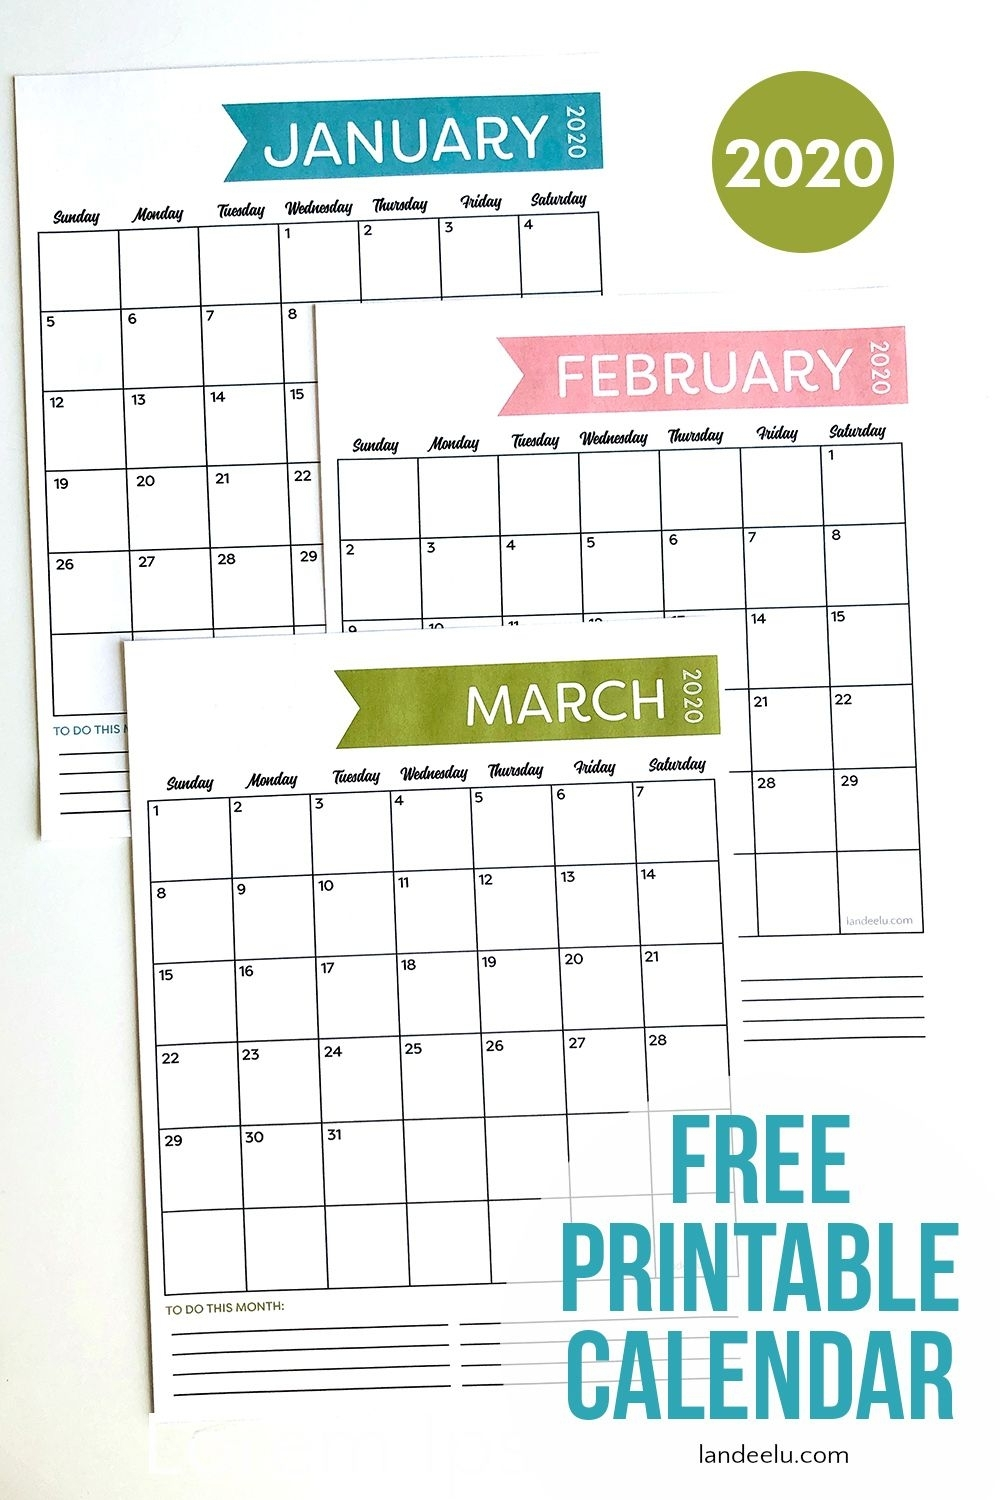 Free Printable Calendar For 2020- Simple Design | Free